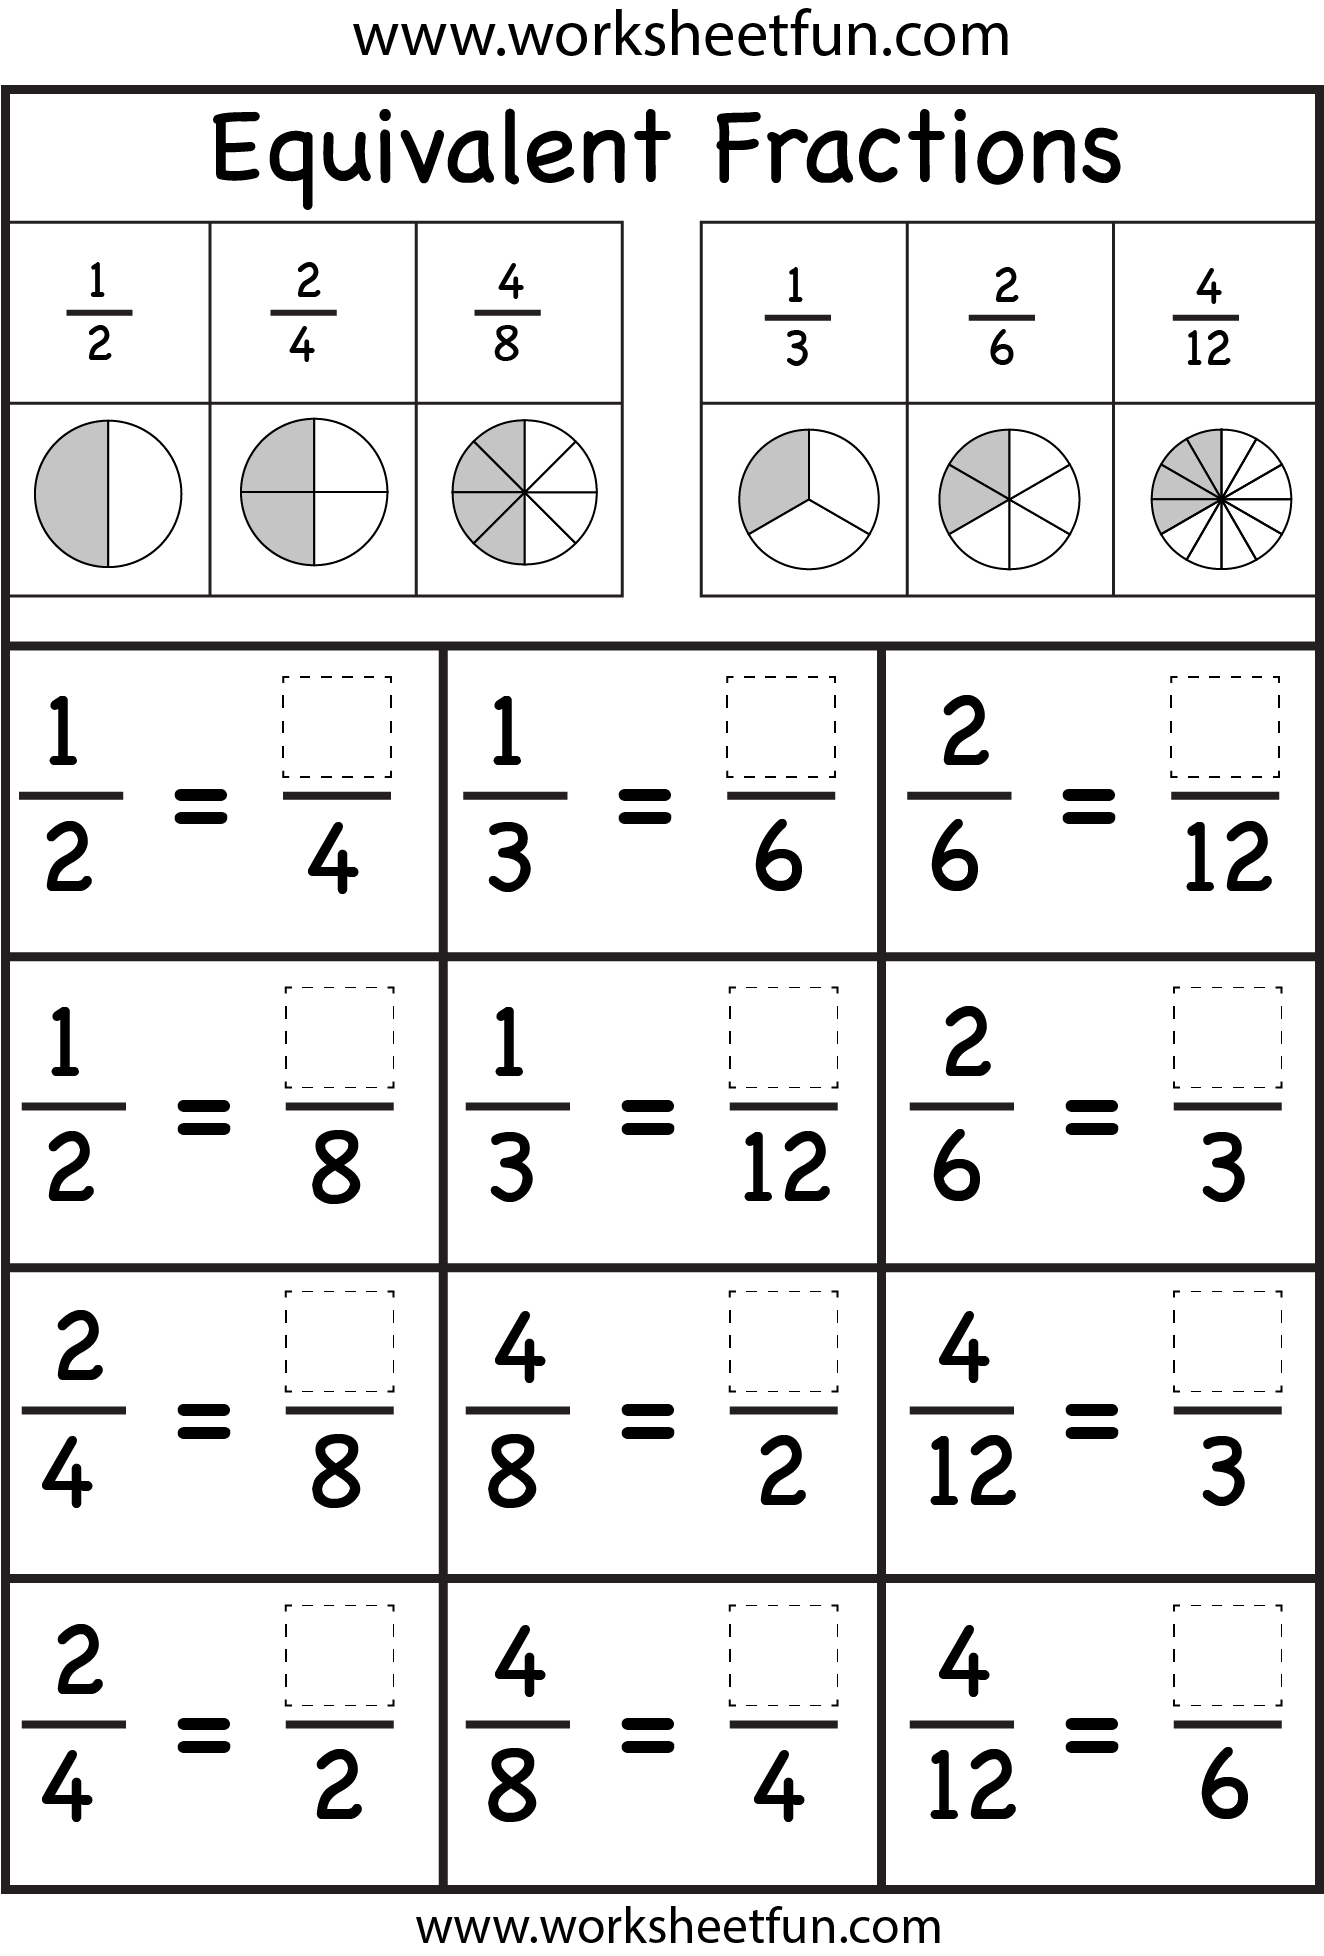 worksheet Worksheets Fractions equivalent fractions fraction worksheets pinterest are equal to each other two if they